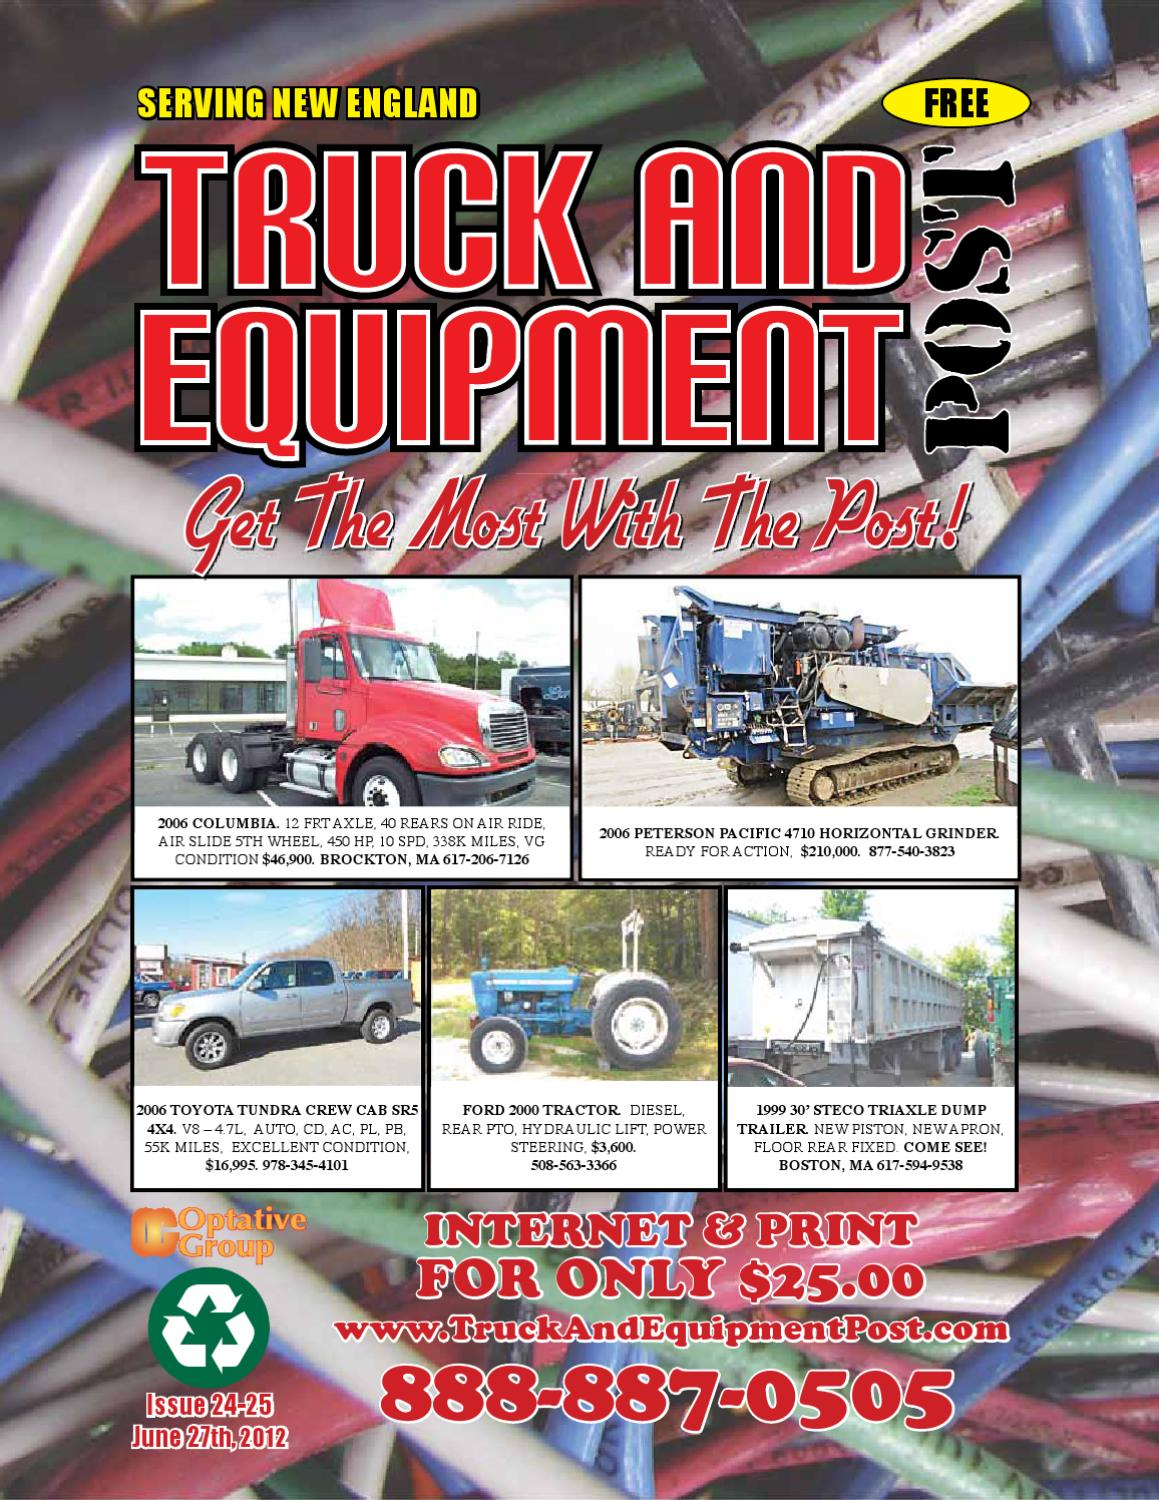 Truck And Equipment Post, Issue #24-25, 2012